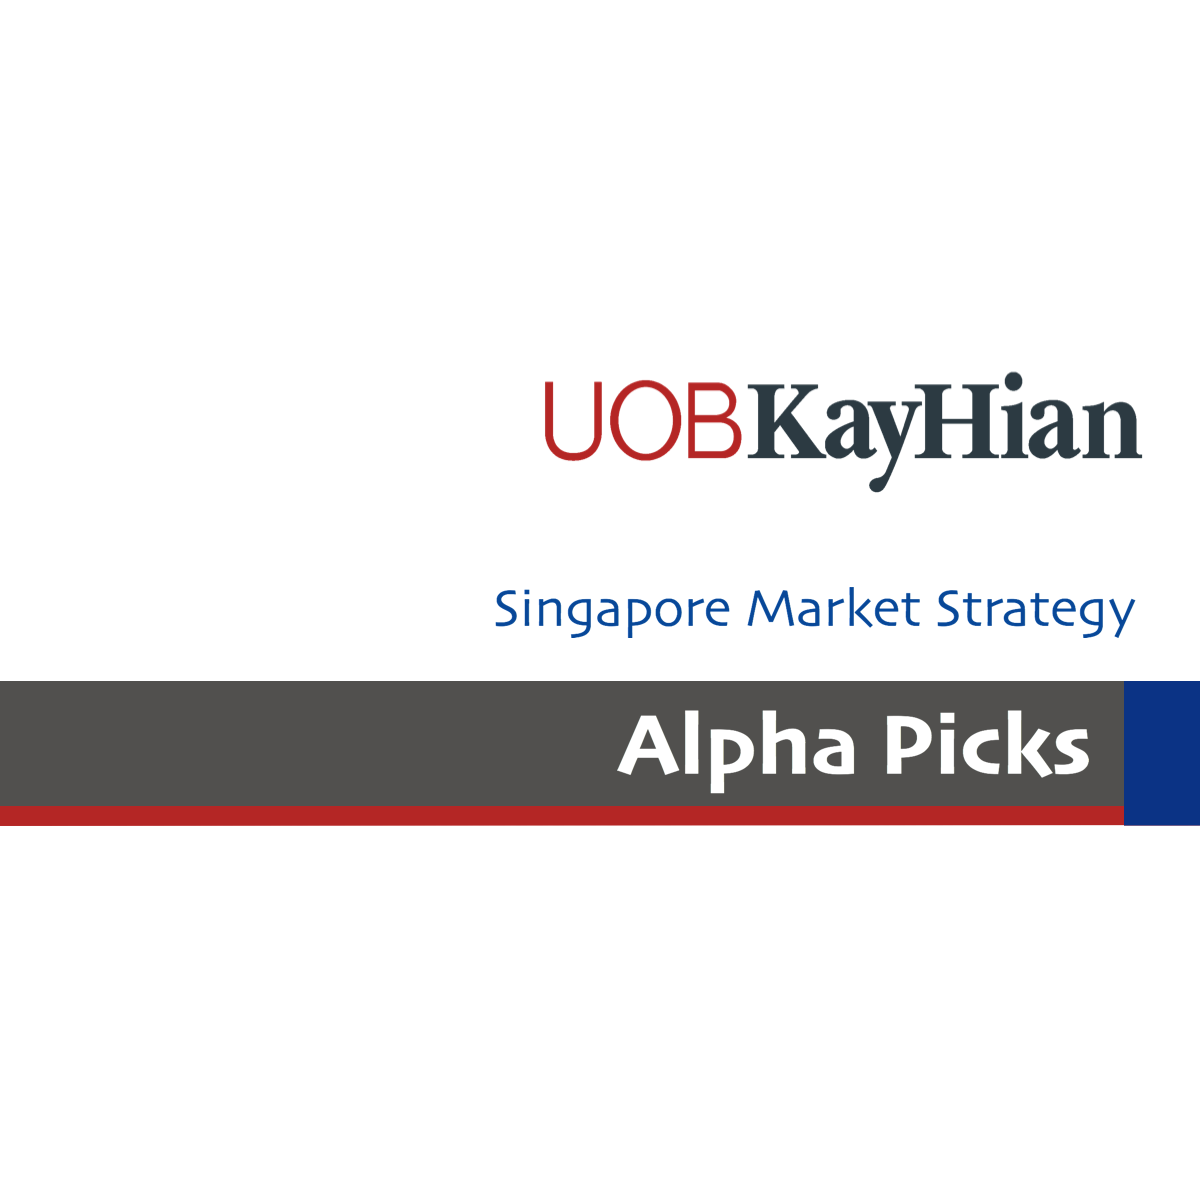 Singapore Strategy - UOB Kay Hian 2017-01-10: Alpha Picks ~ Switching Large-cap Picks